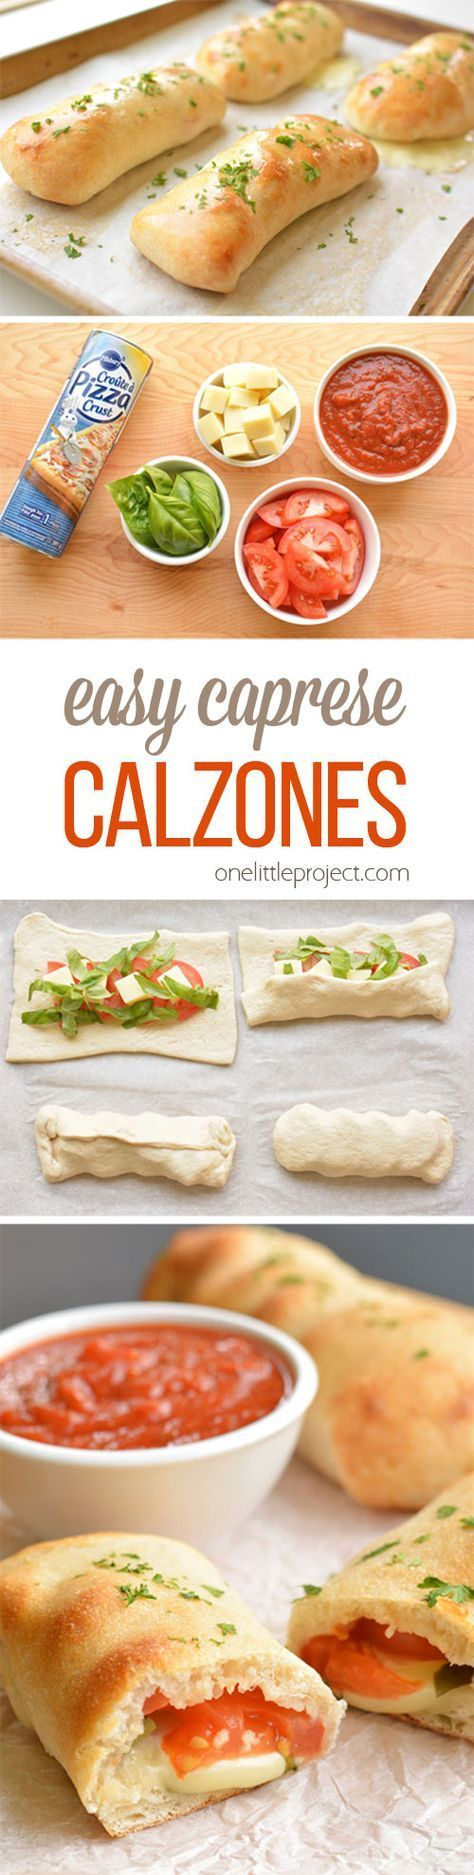 These caprese calzones are so easy to make and they taste SO GOOD! Only 5 ingredients and they take less than 10 min to prepare. The fresh basil and tomato flavors are amazing! | https://lomejordelaweb.es/